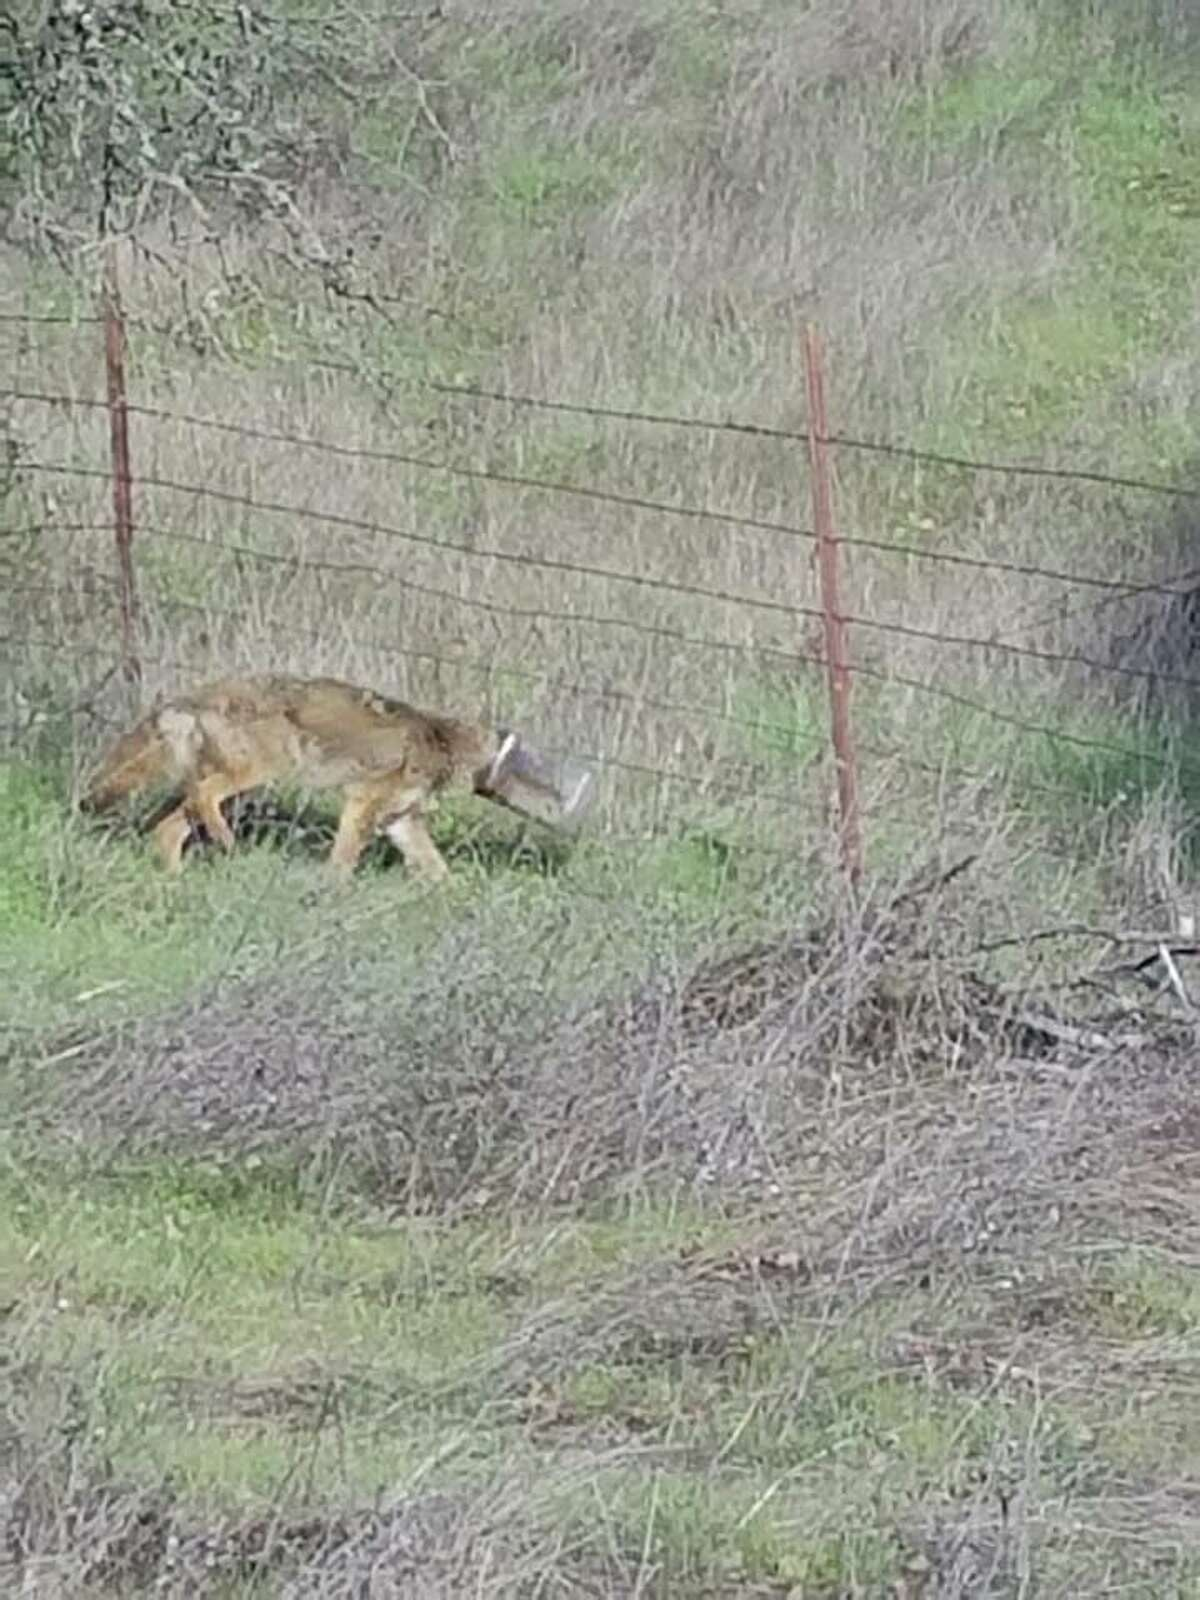 The coyote was first spotted with a plastic container over her head the week of Jan. 22, 2018.